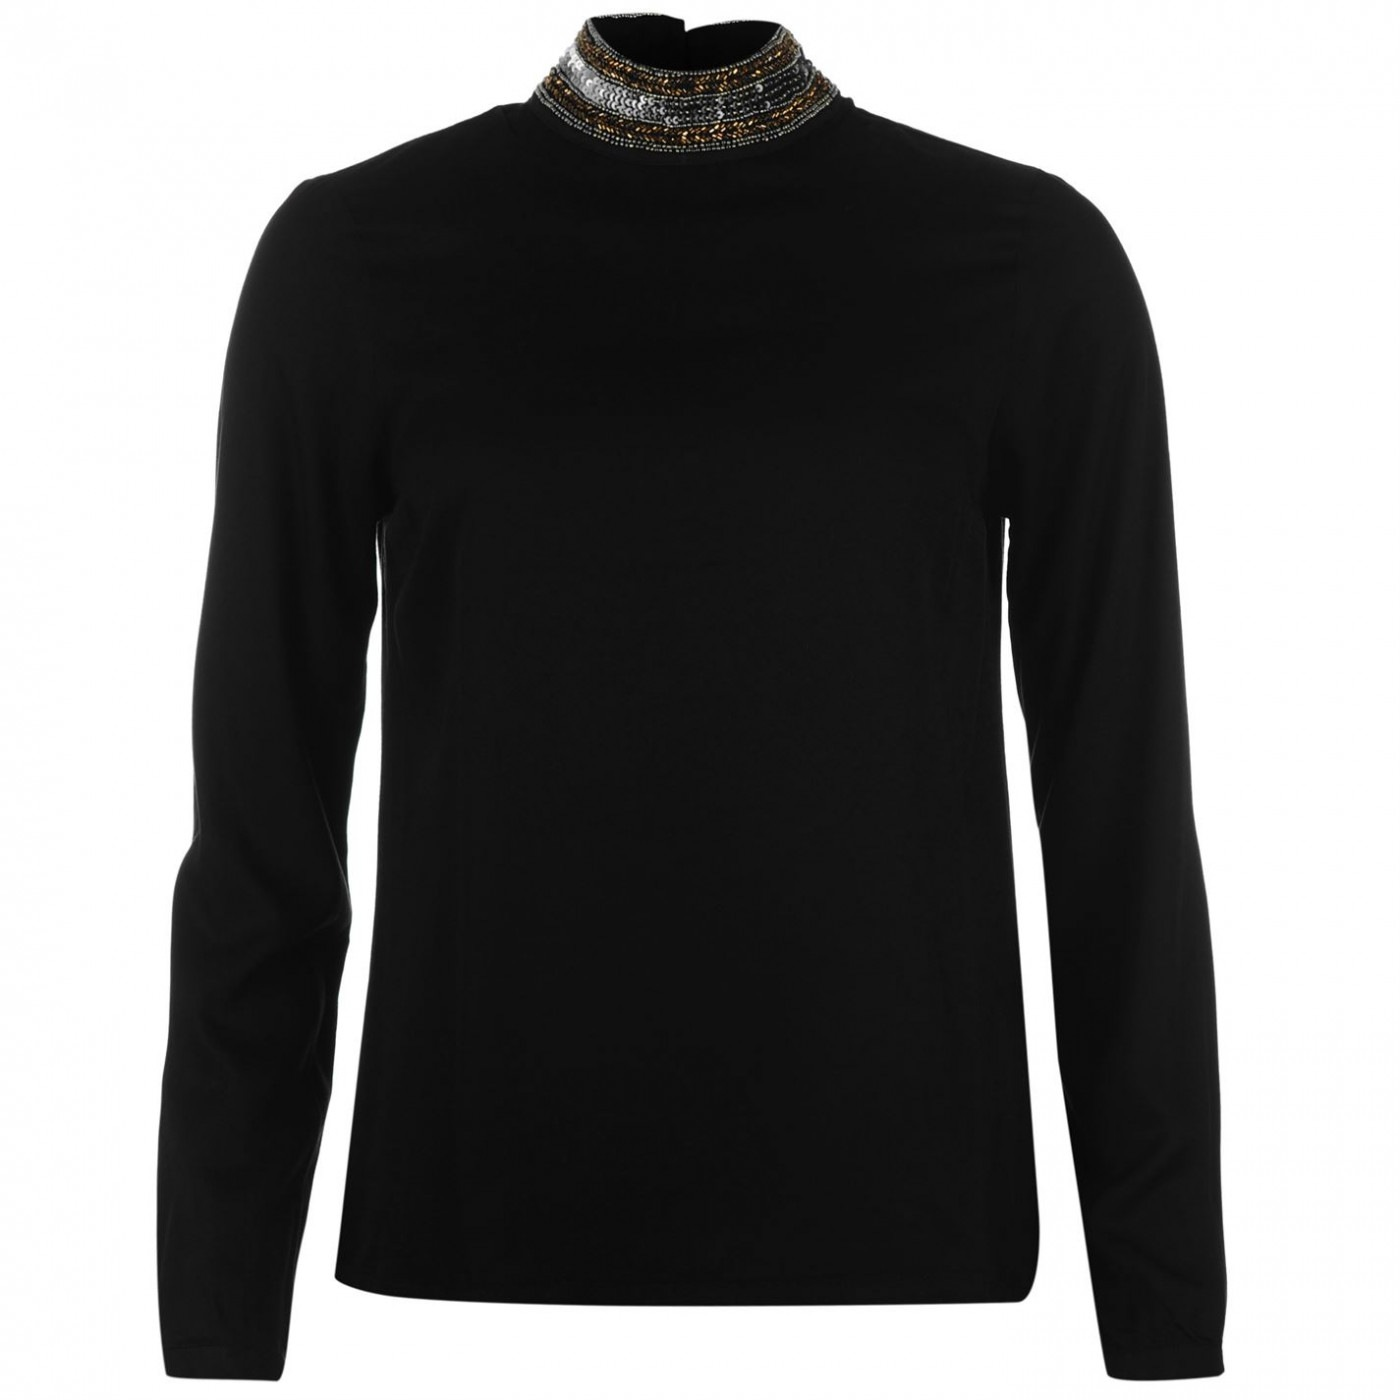 aca4e1ab6 Triko Vero Moda Dacia Embellished Long Sleeve Top - FACTCOOL